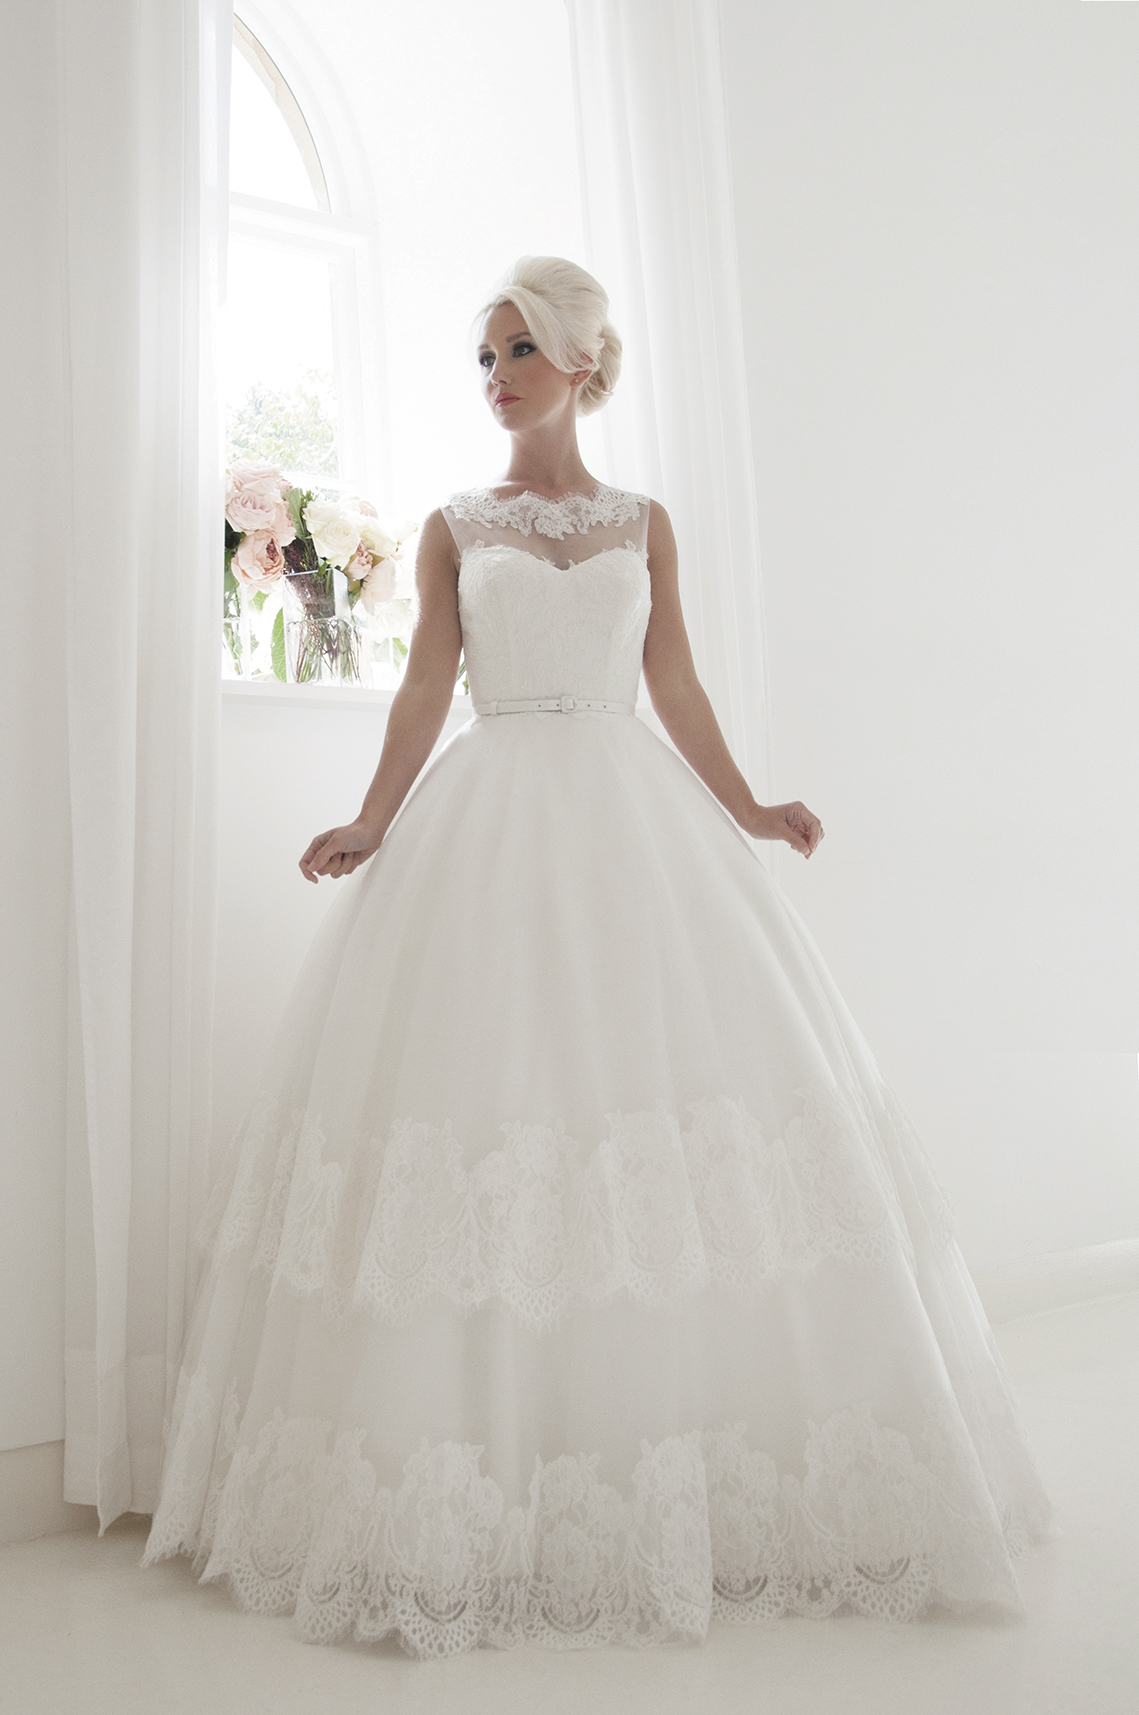 exquisite bridal gown